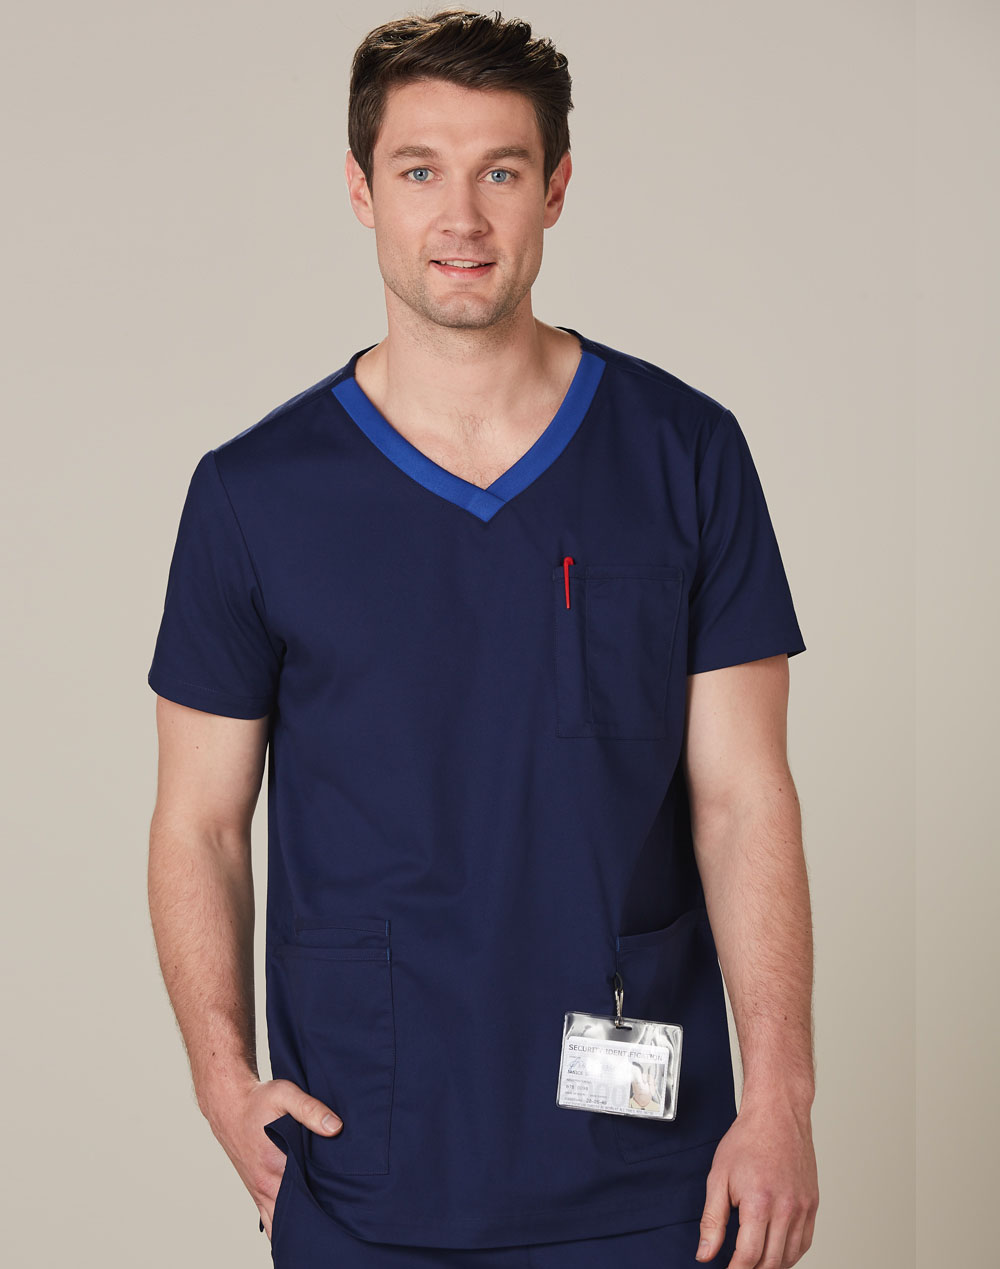 Get Mens v-Neck Contrast Trim Scrub Tops Online in Perth